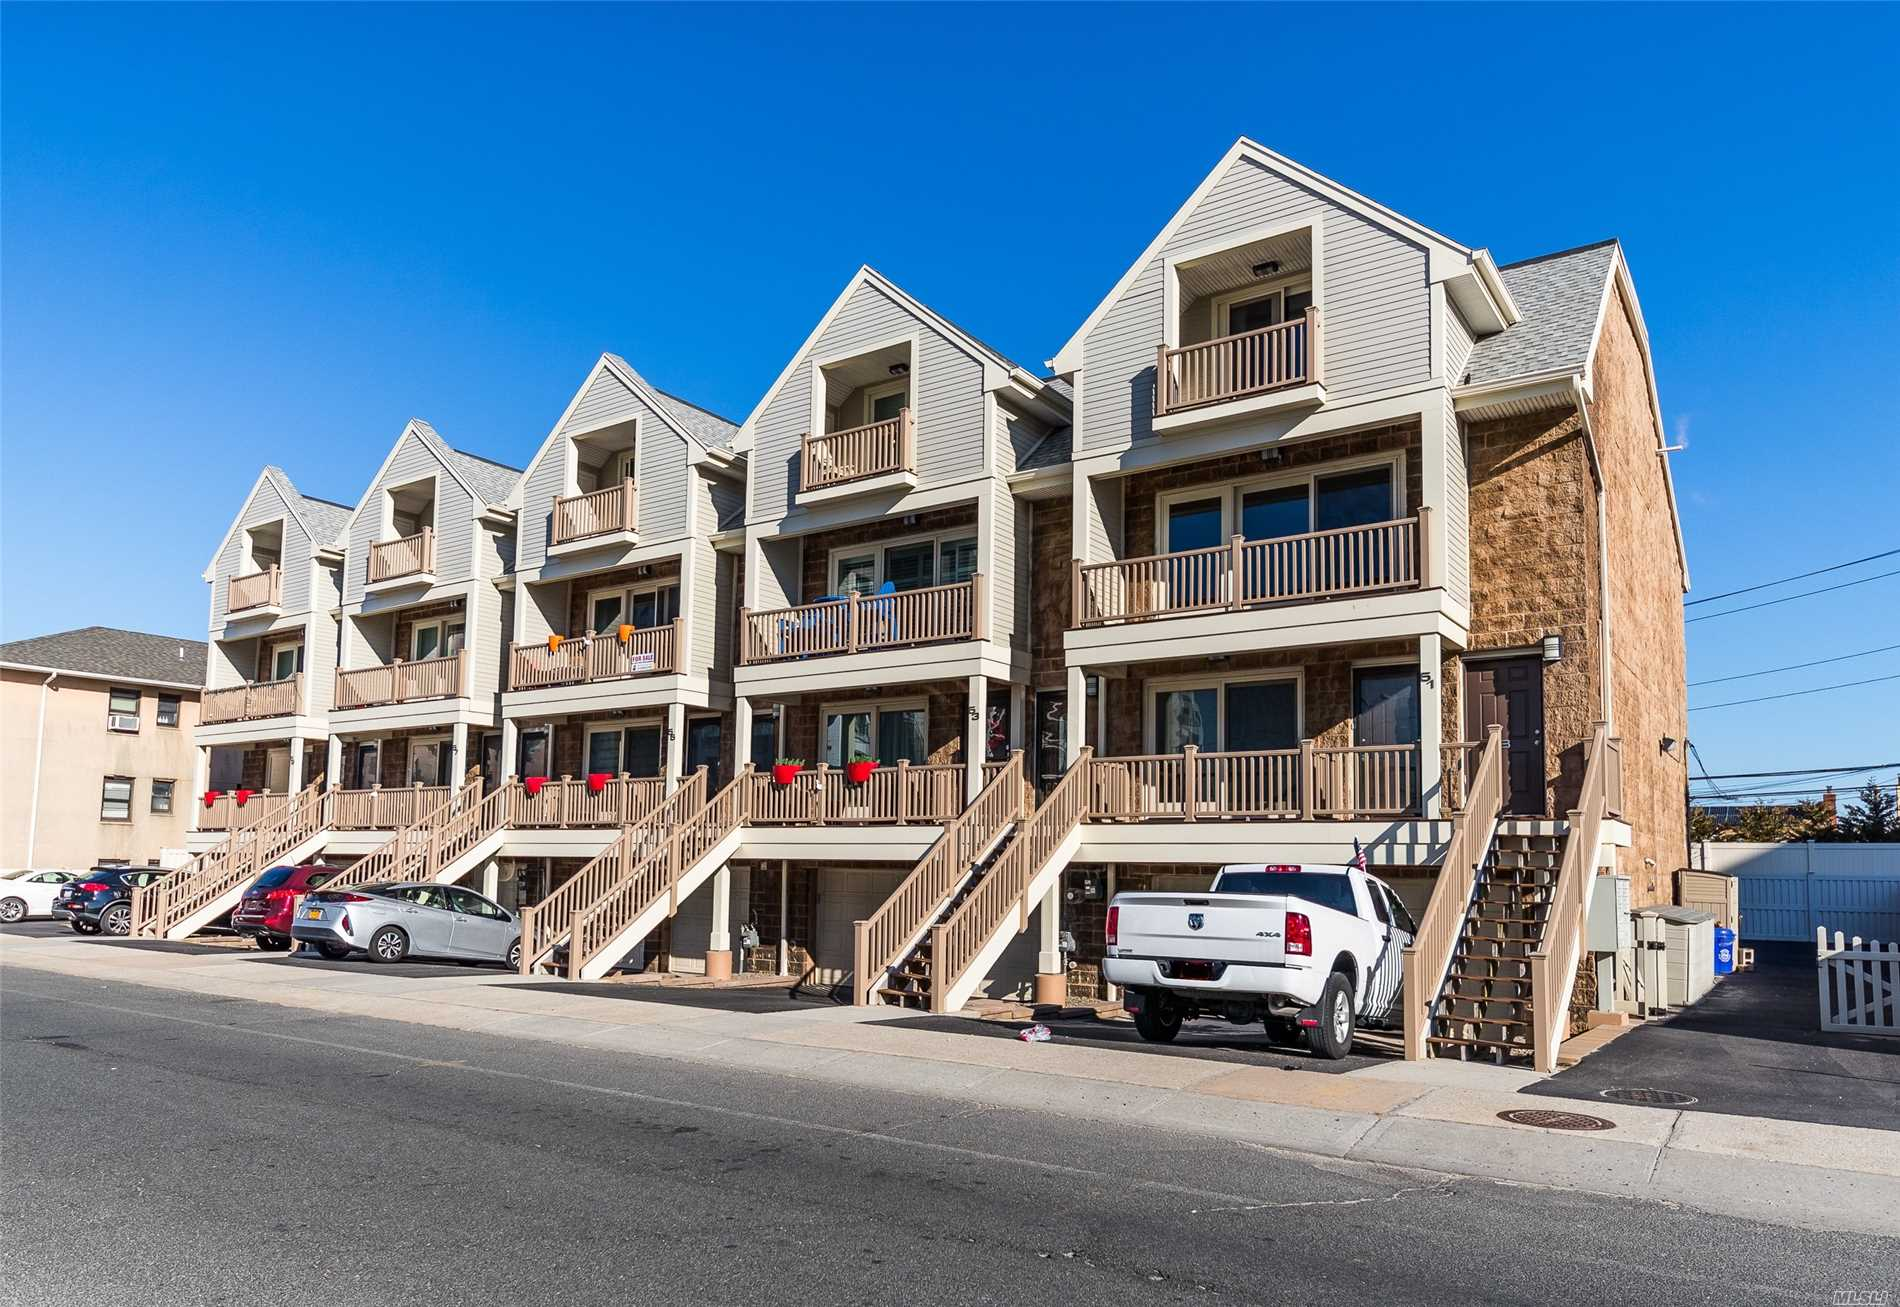 Property for sale at 51B W BROADWAY # B, Long Beach NY 11561, Long Beach,  New York 11561